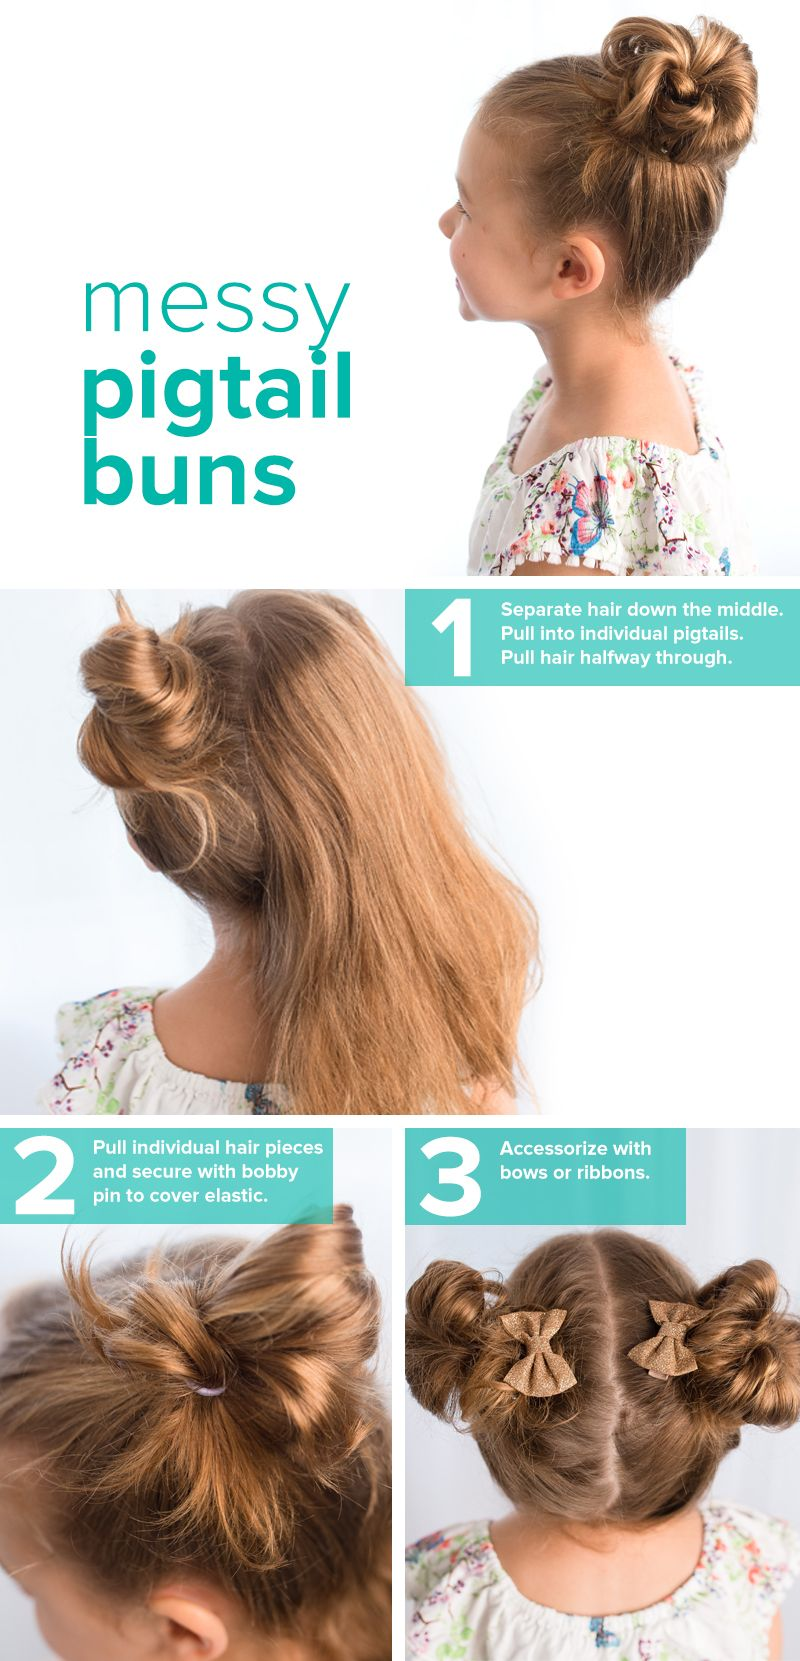 5 fast, easy, cute hairstyles for girls | Pigtail buns ...